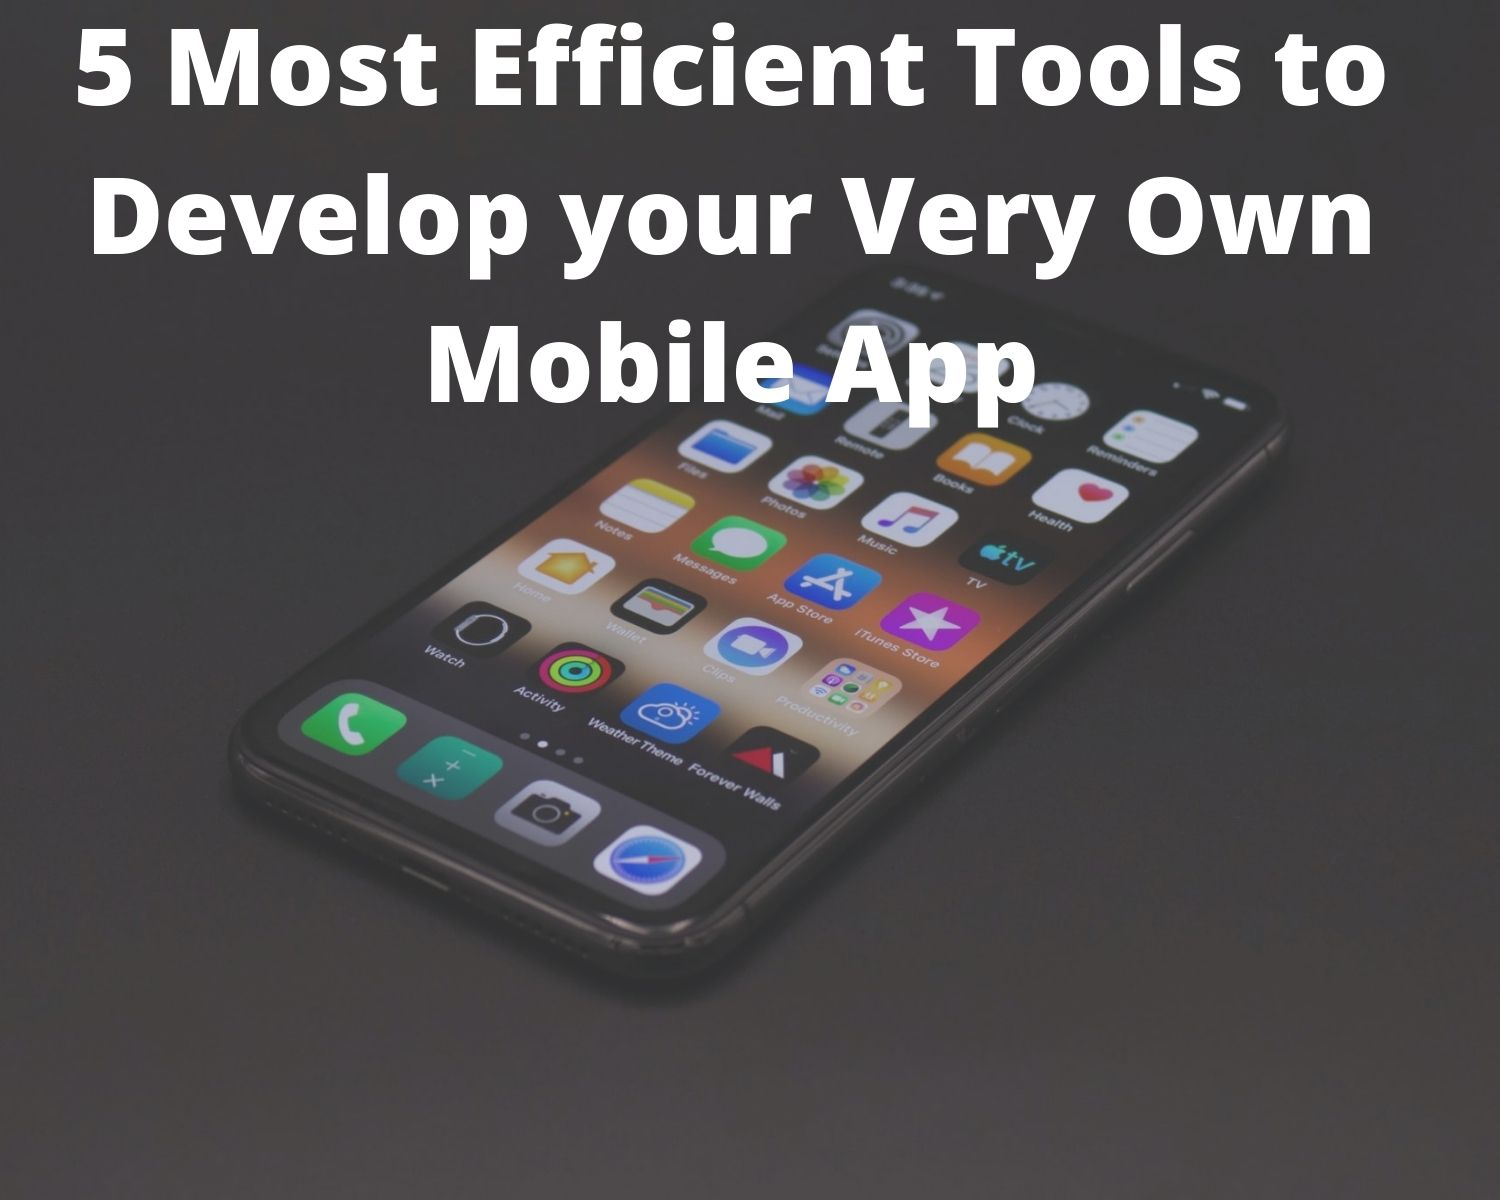 5 Most Efficient Tools to Develop your Very Own Mobile App